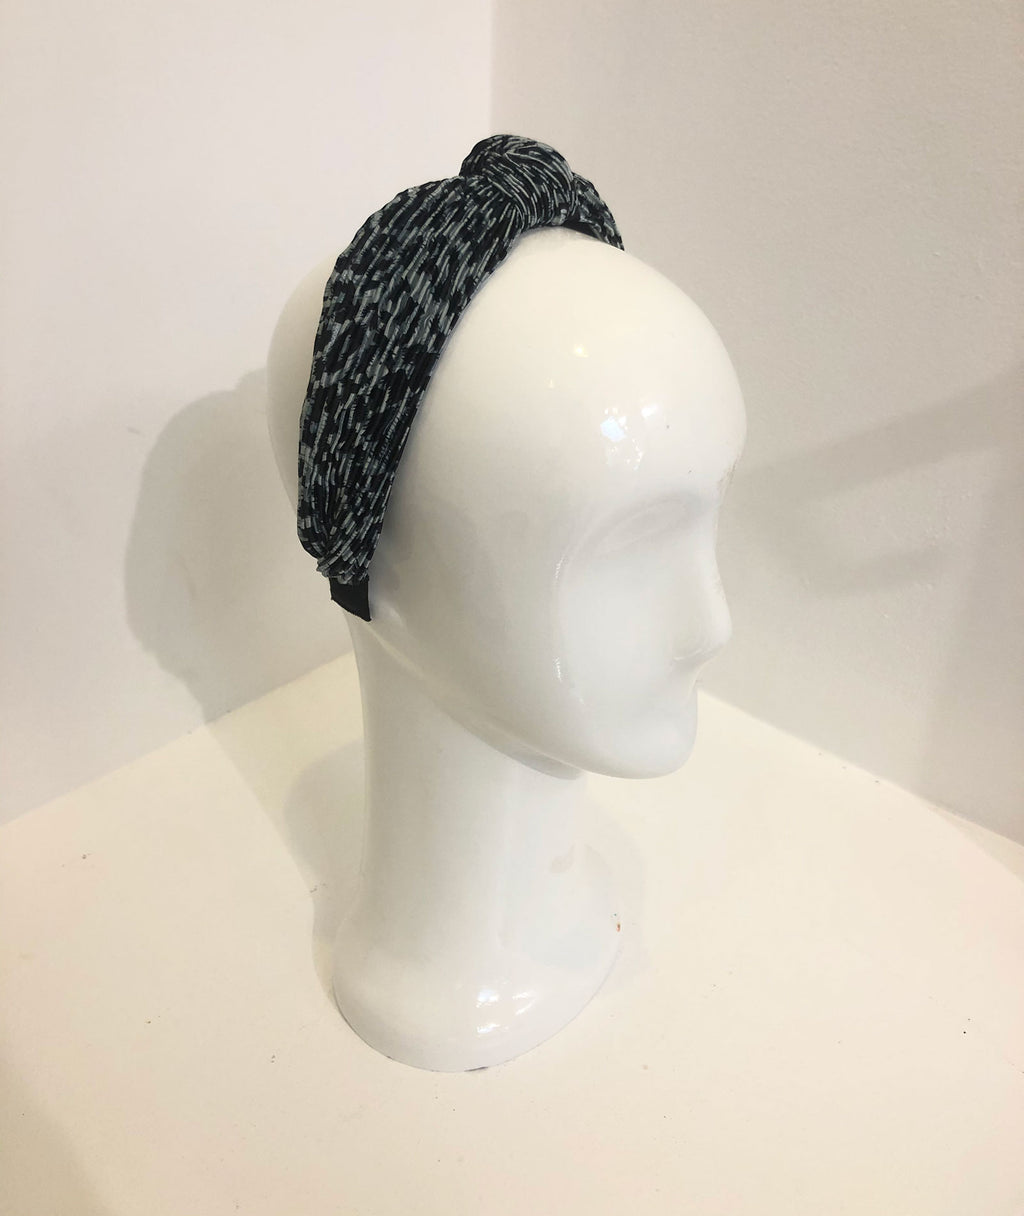 Fashionista J Pleated Headband